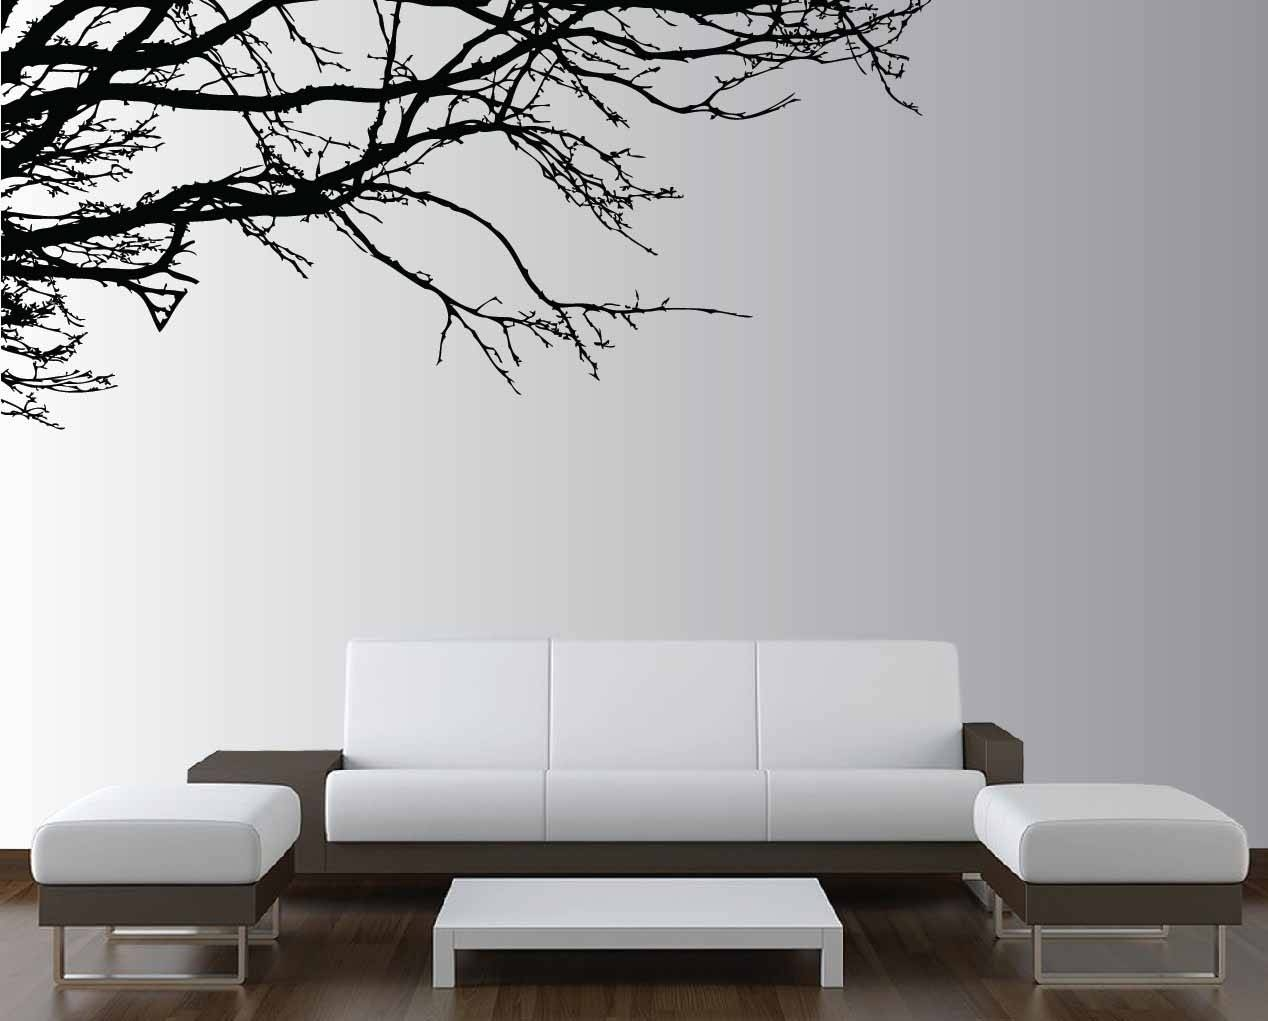 Bedroom Wall Art Enhance Your Bedroom Space – My Blog Within Newest Bed Wall Art (View 8 of 25)